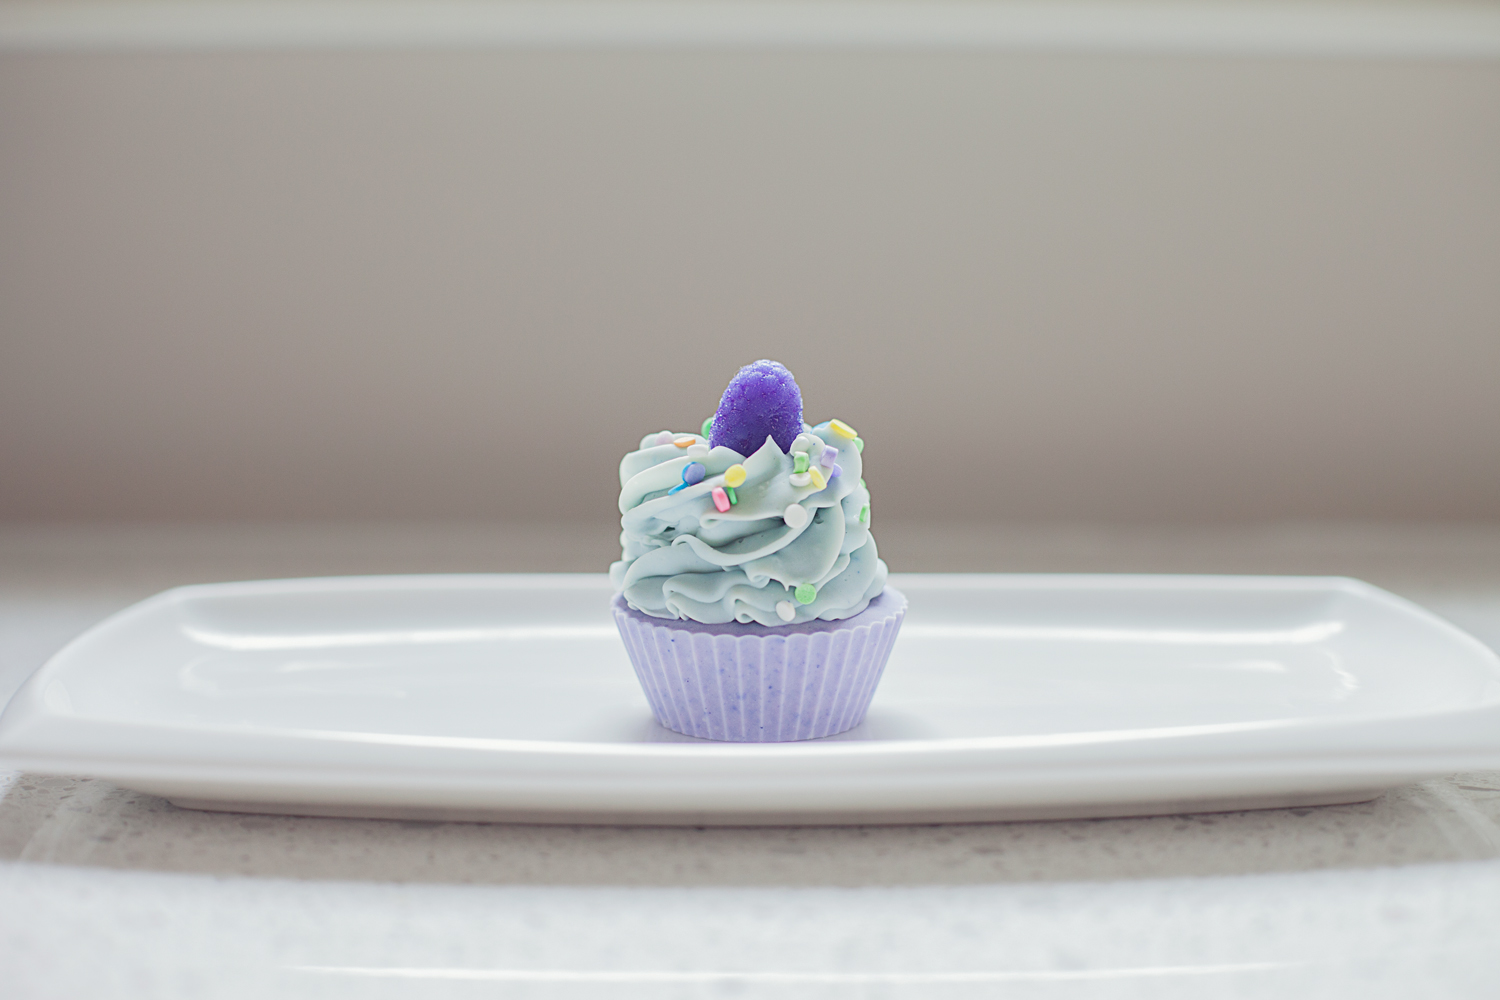 baked-soap-product-photography-toronto-013